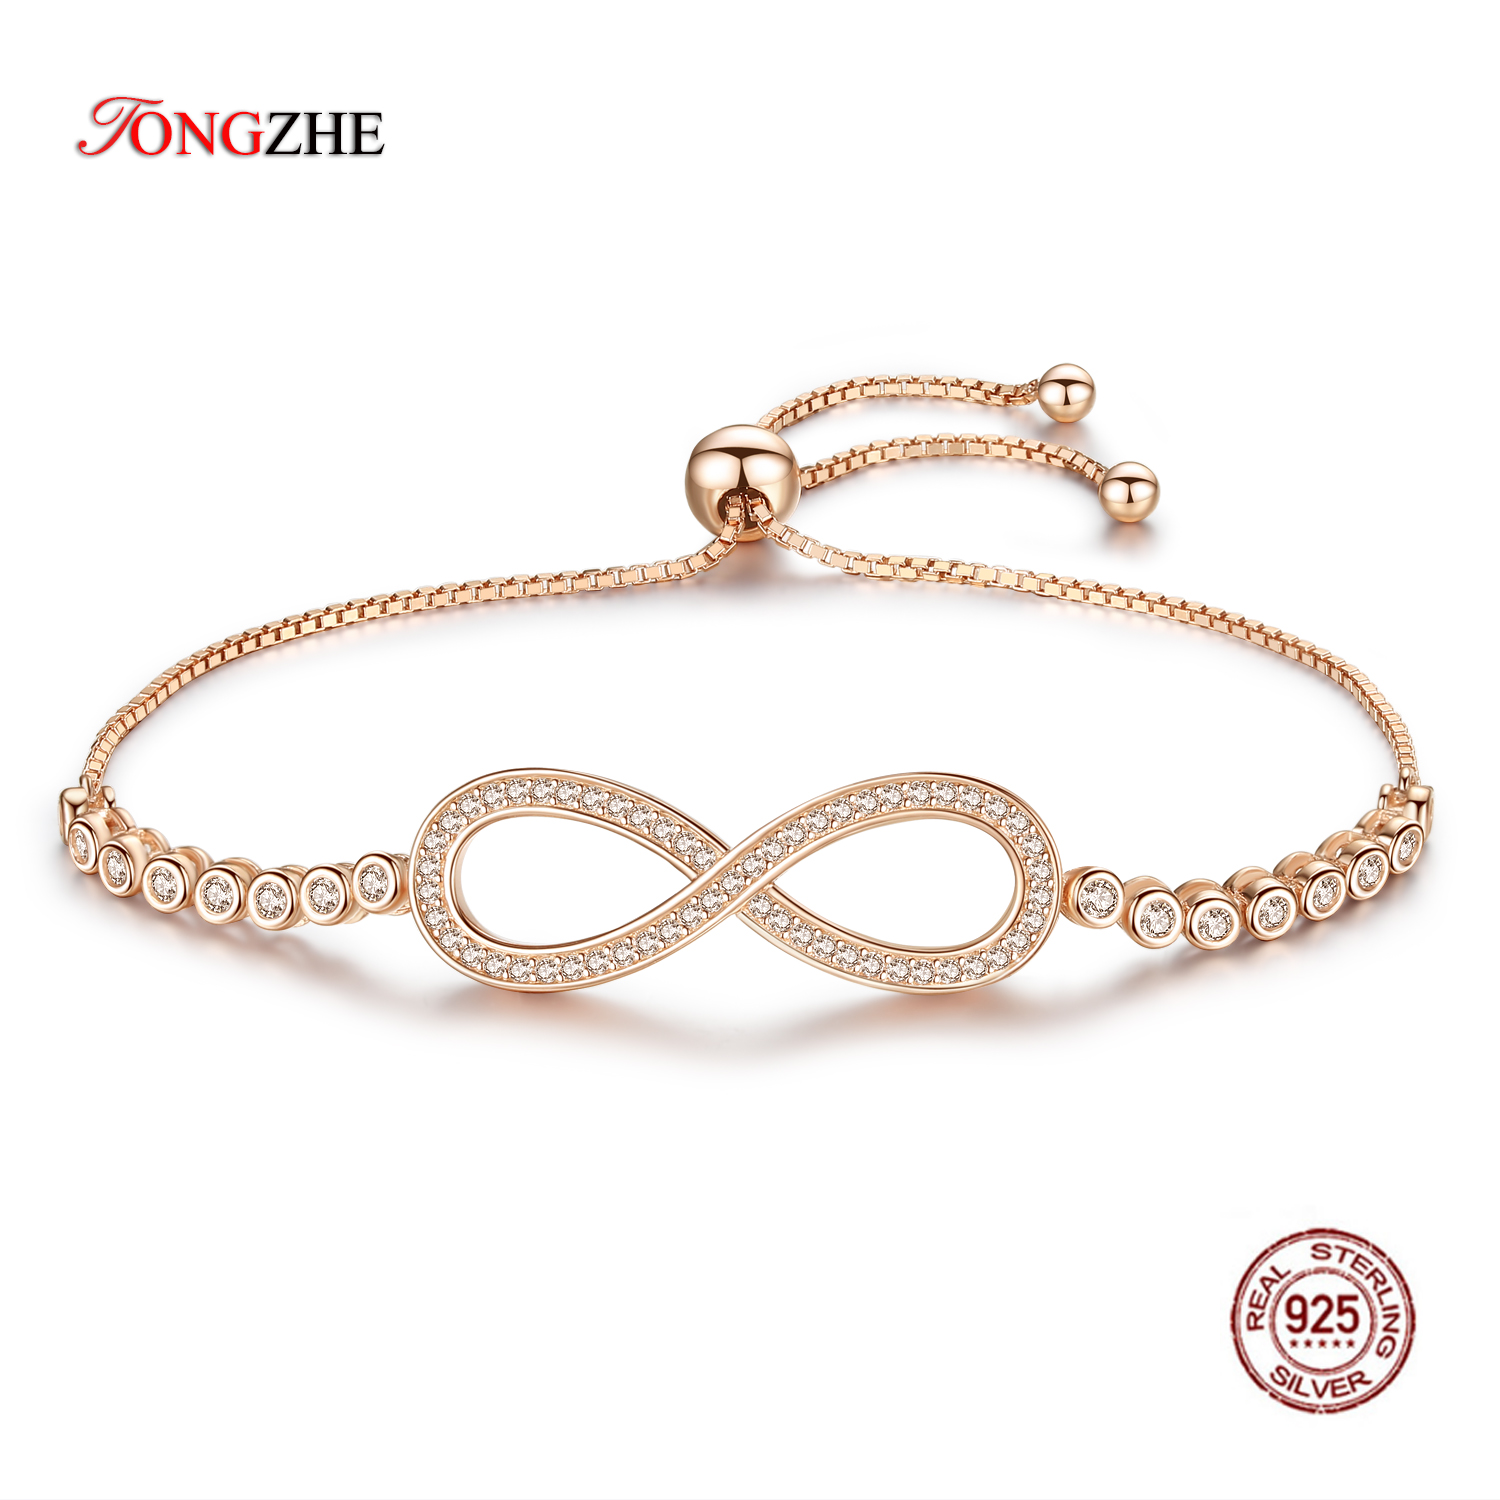 TONGZHE Endless Mens Bracelets 2018 Sterling Silver 925 CZ Rose Gold Charm Infinity Tennis Bracelets for Women Jewelry Pulsera tongzhe endless mens bracelets 2018 sterling silver 925 cz rose gold charm infinity tennis bracelets for women jewelry pulsera